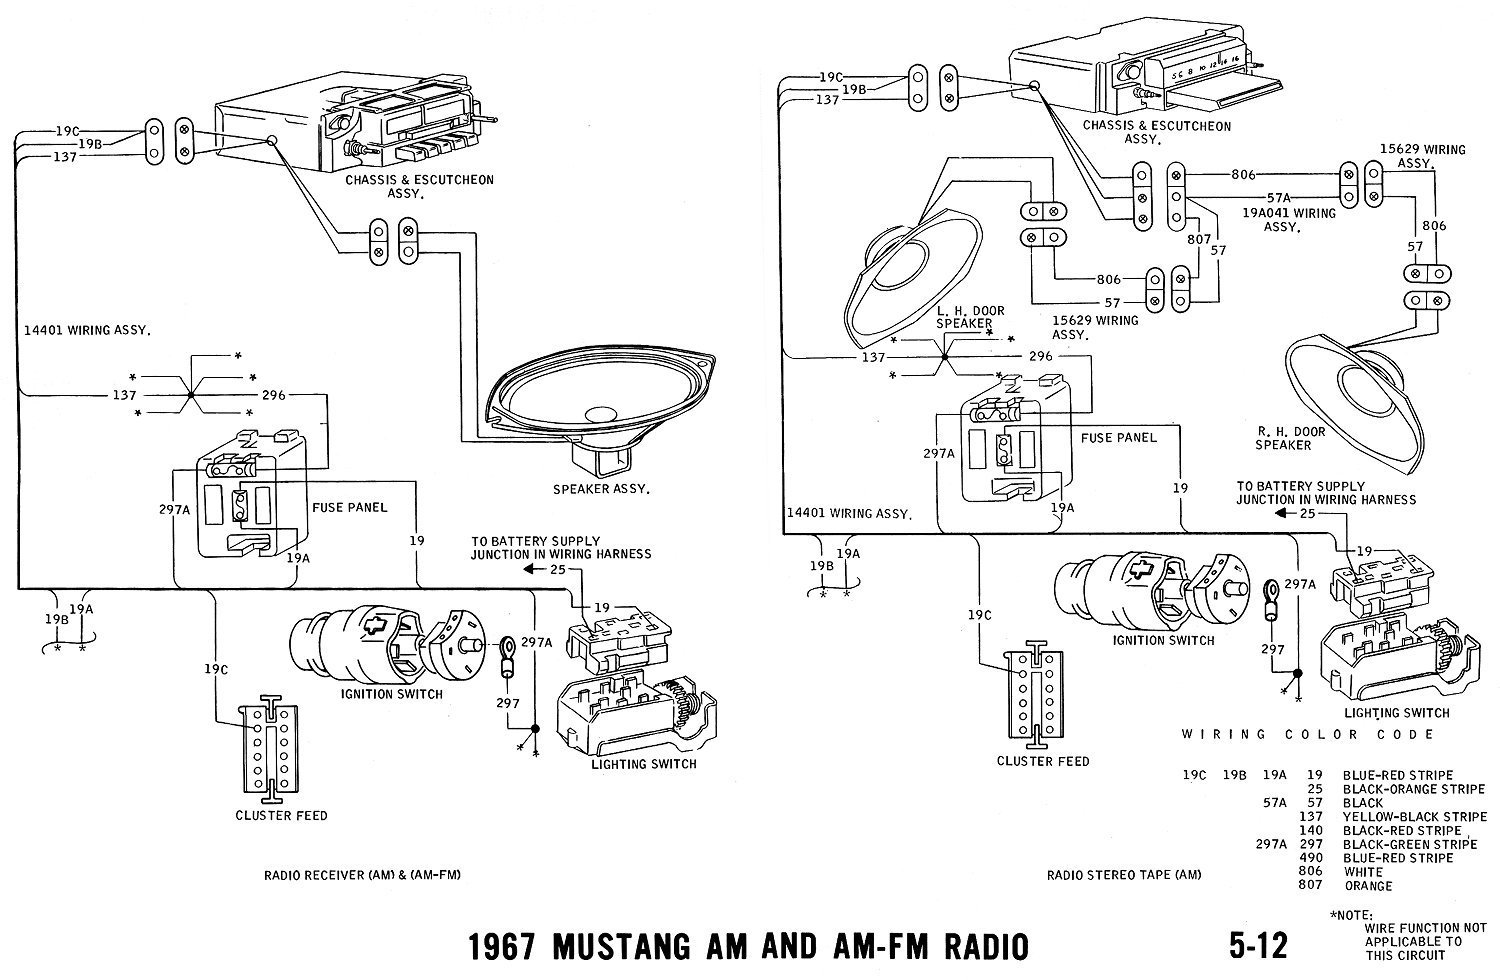 Mustang Radio Wiring Diagram Wiring Diagram Images